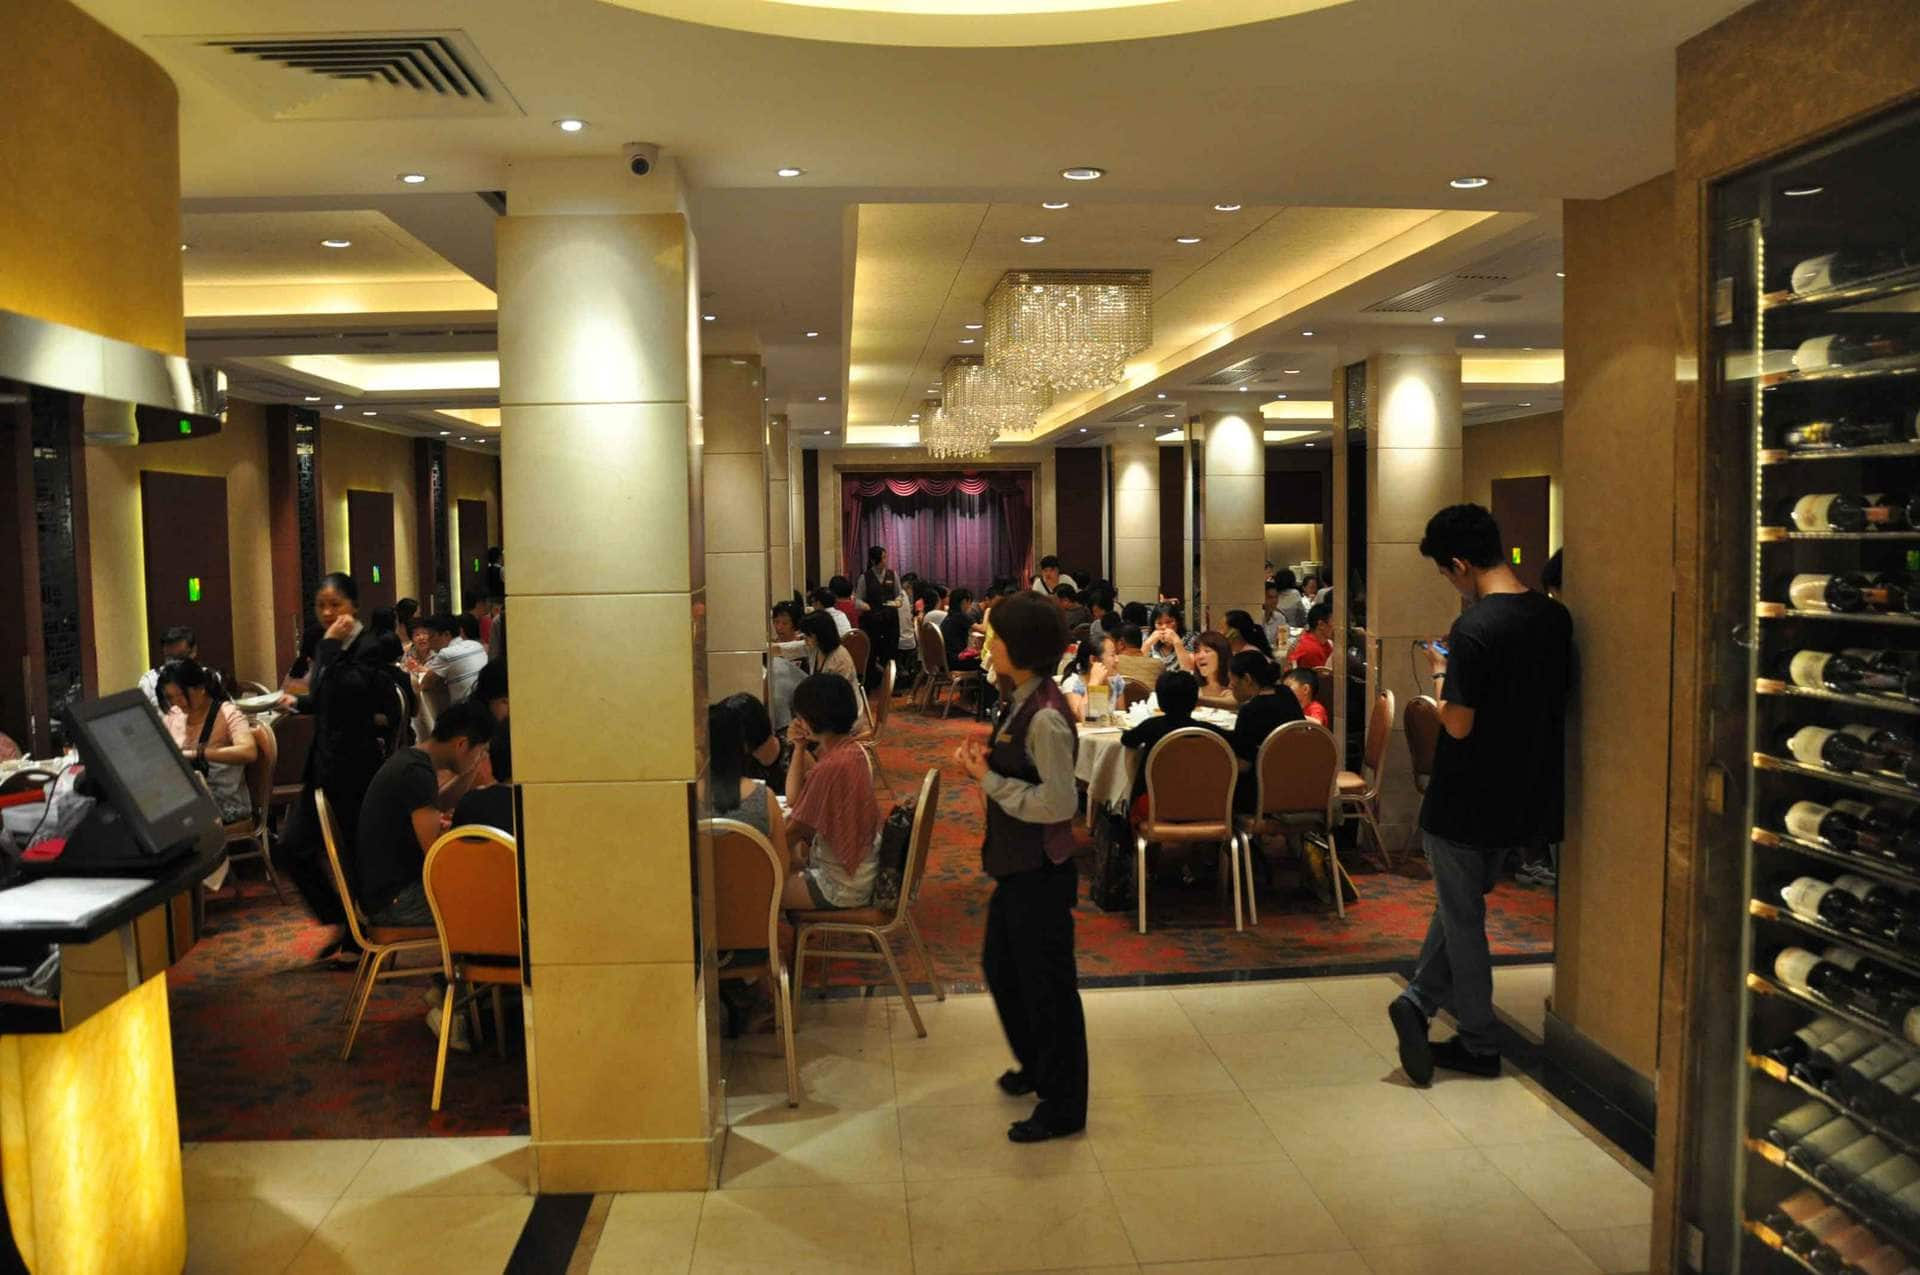 Tou Tou Koi Macau inside seating